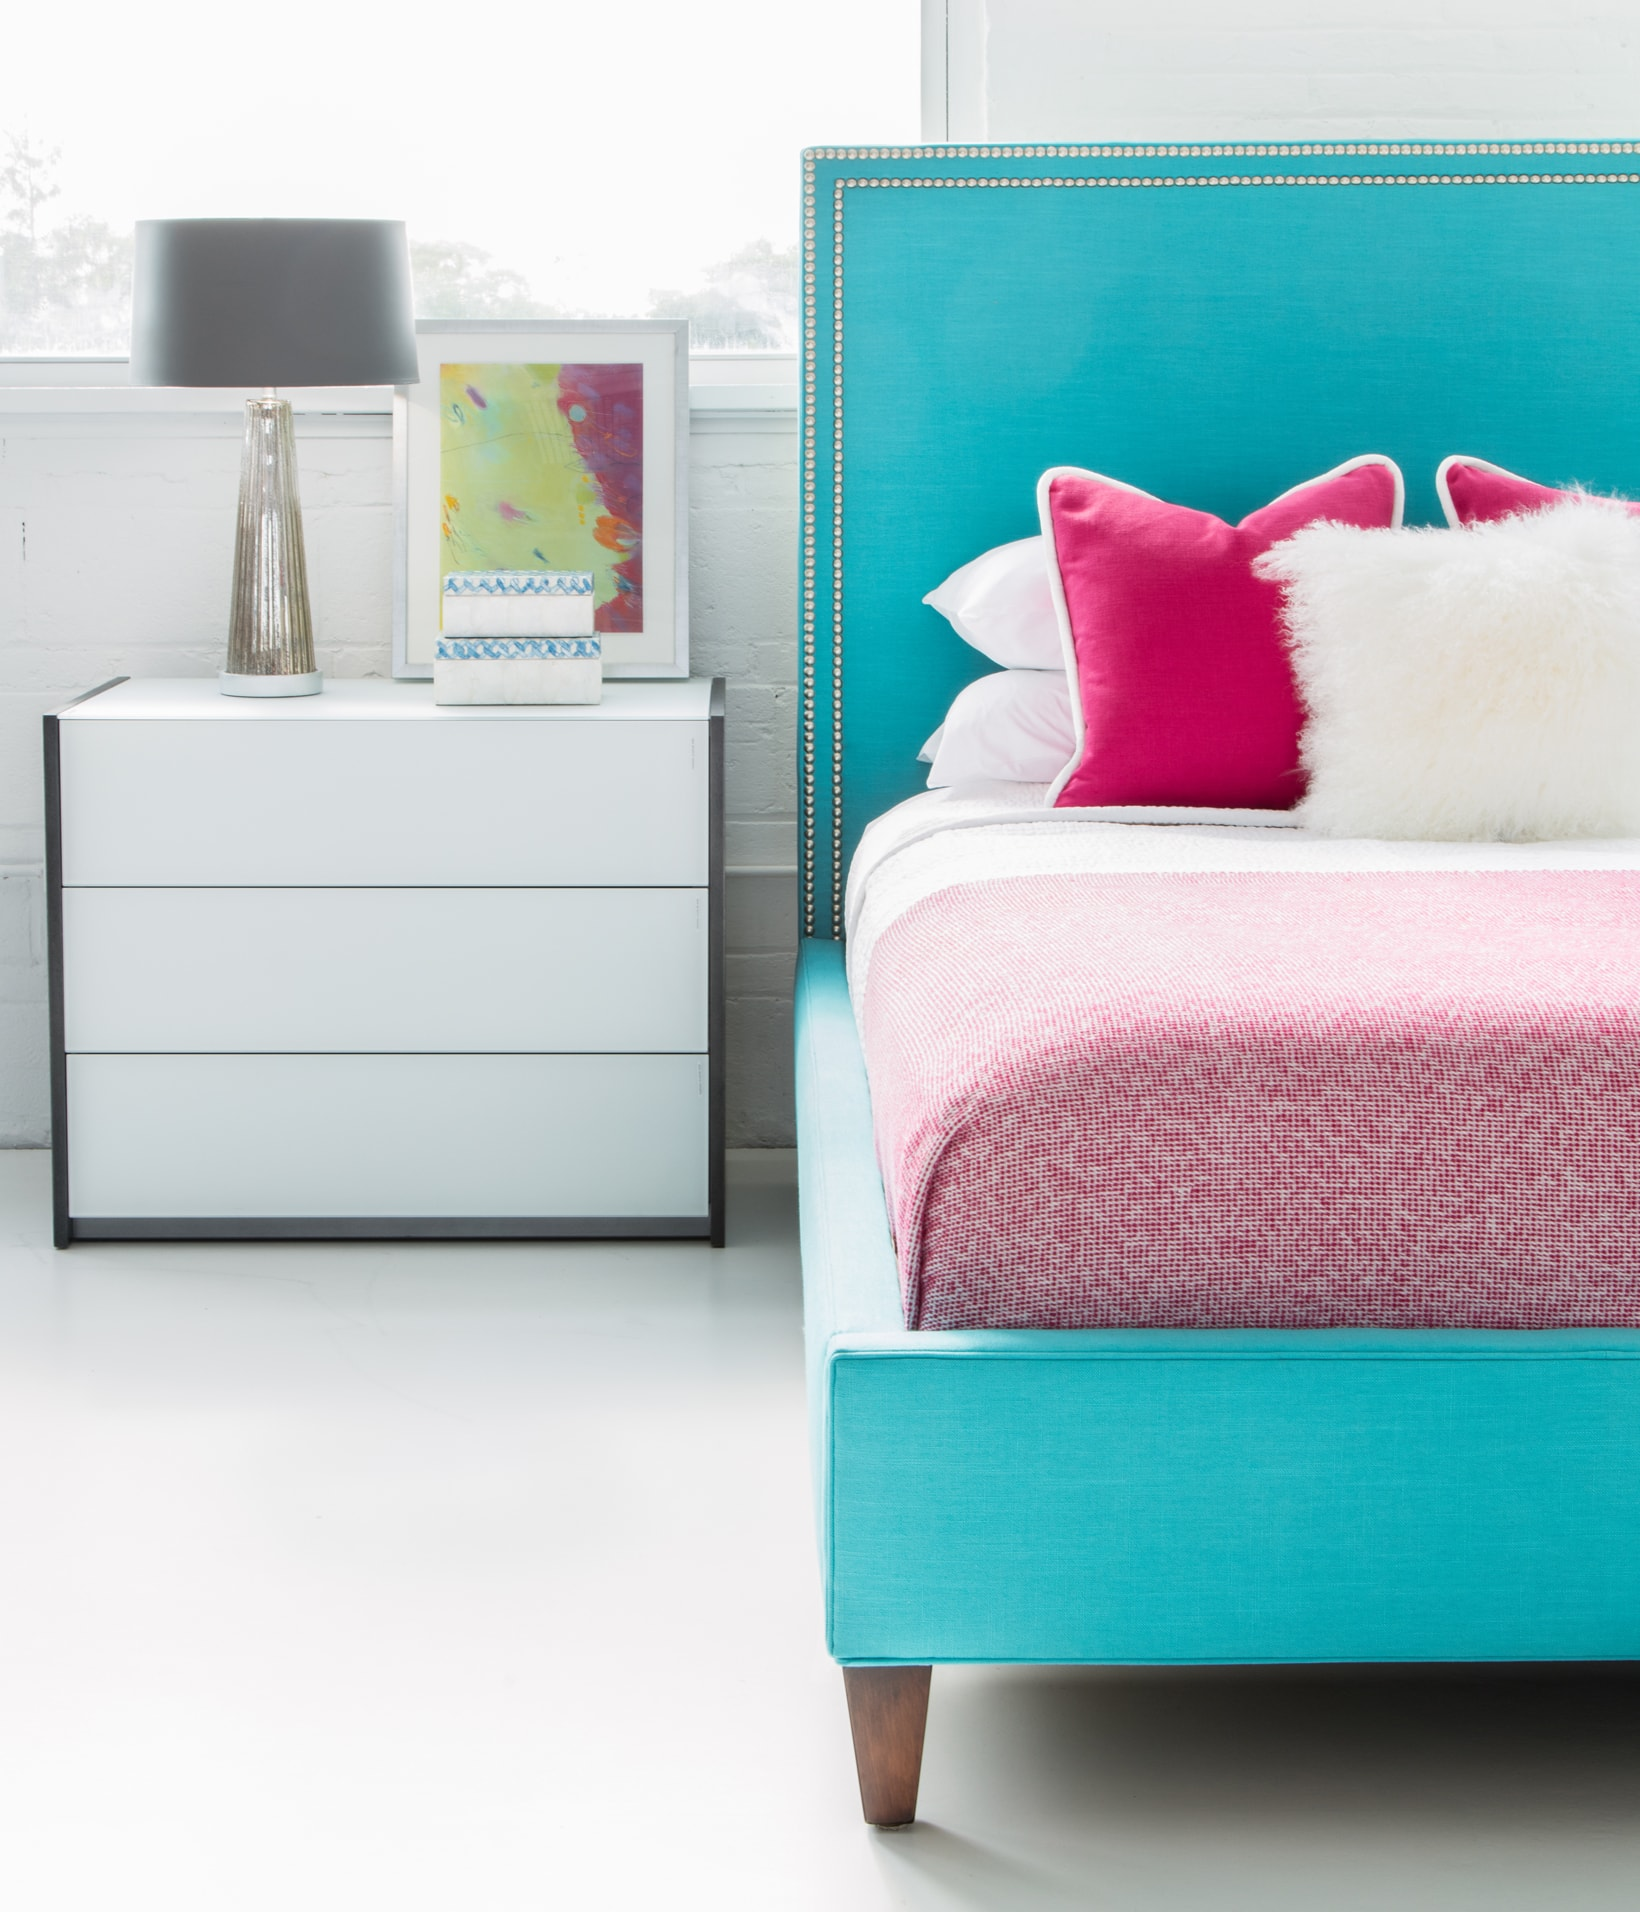 Circle Furniture How Much Does It Cost To Furnish A Bedroom